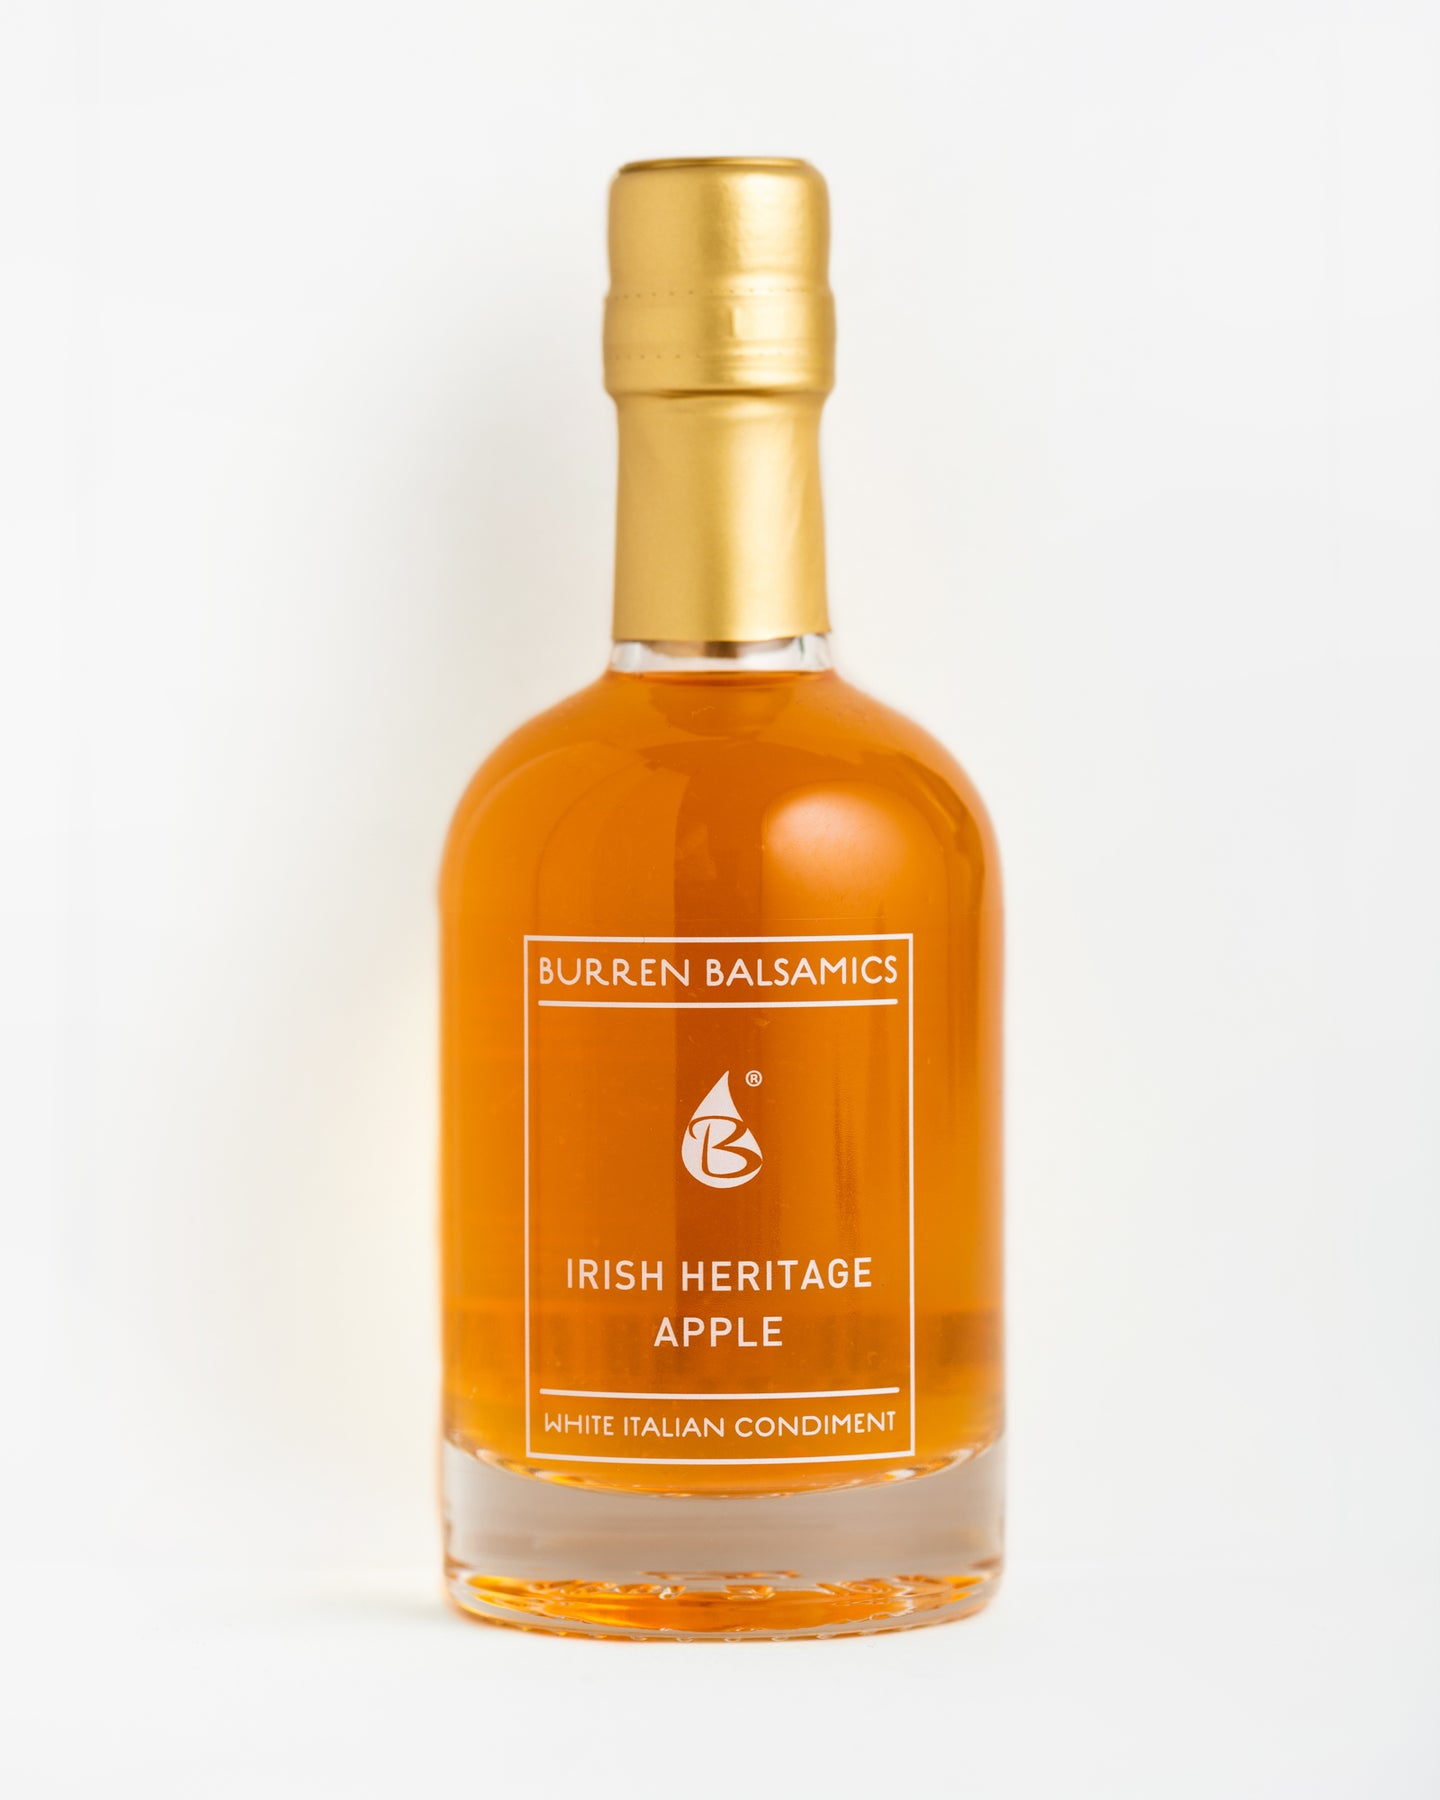 Burren Balsamics - White Condiment - Irish Heritage Apple